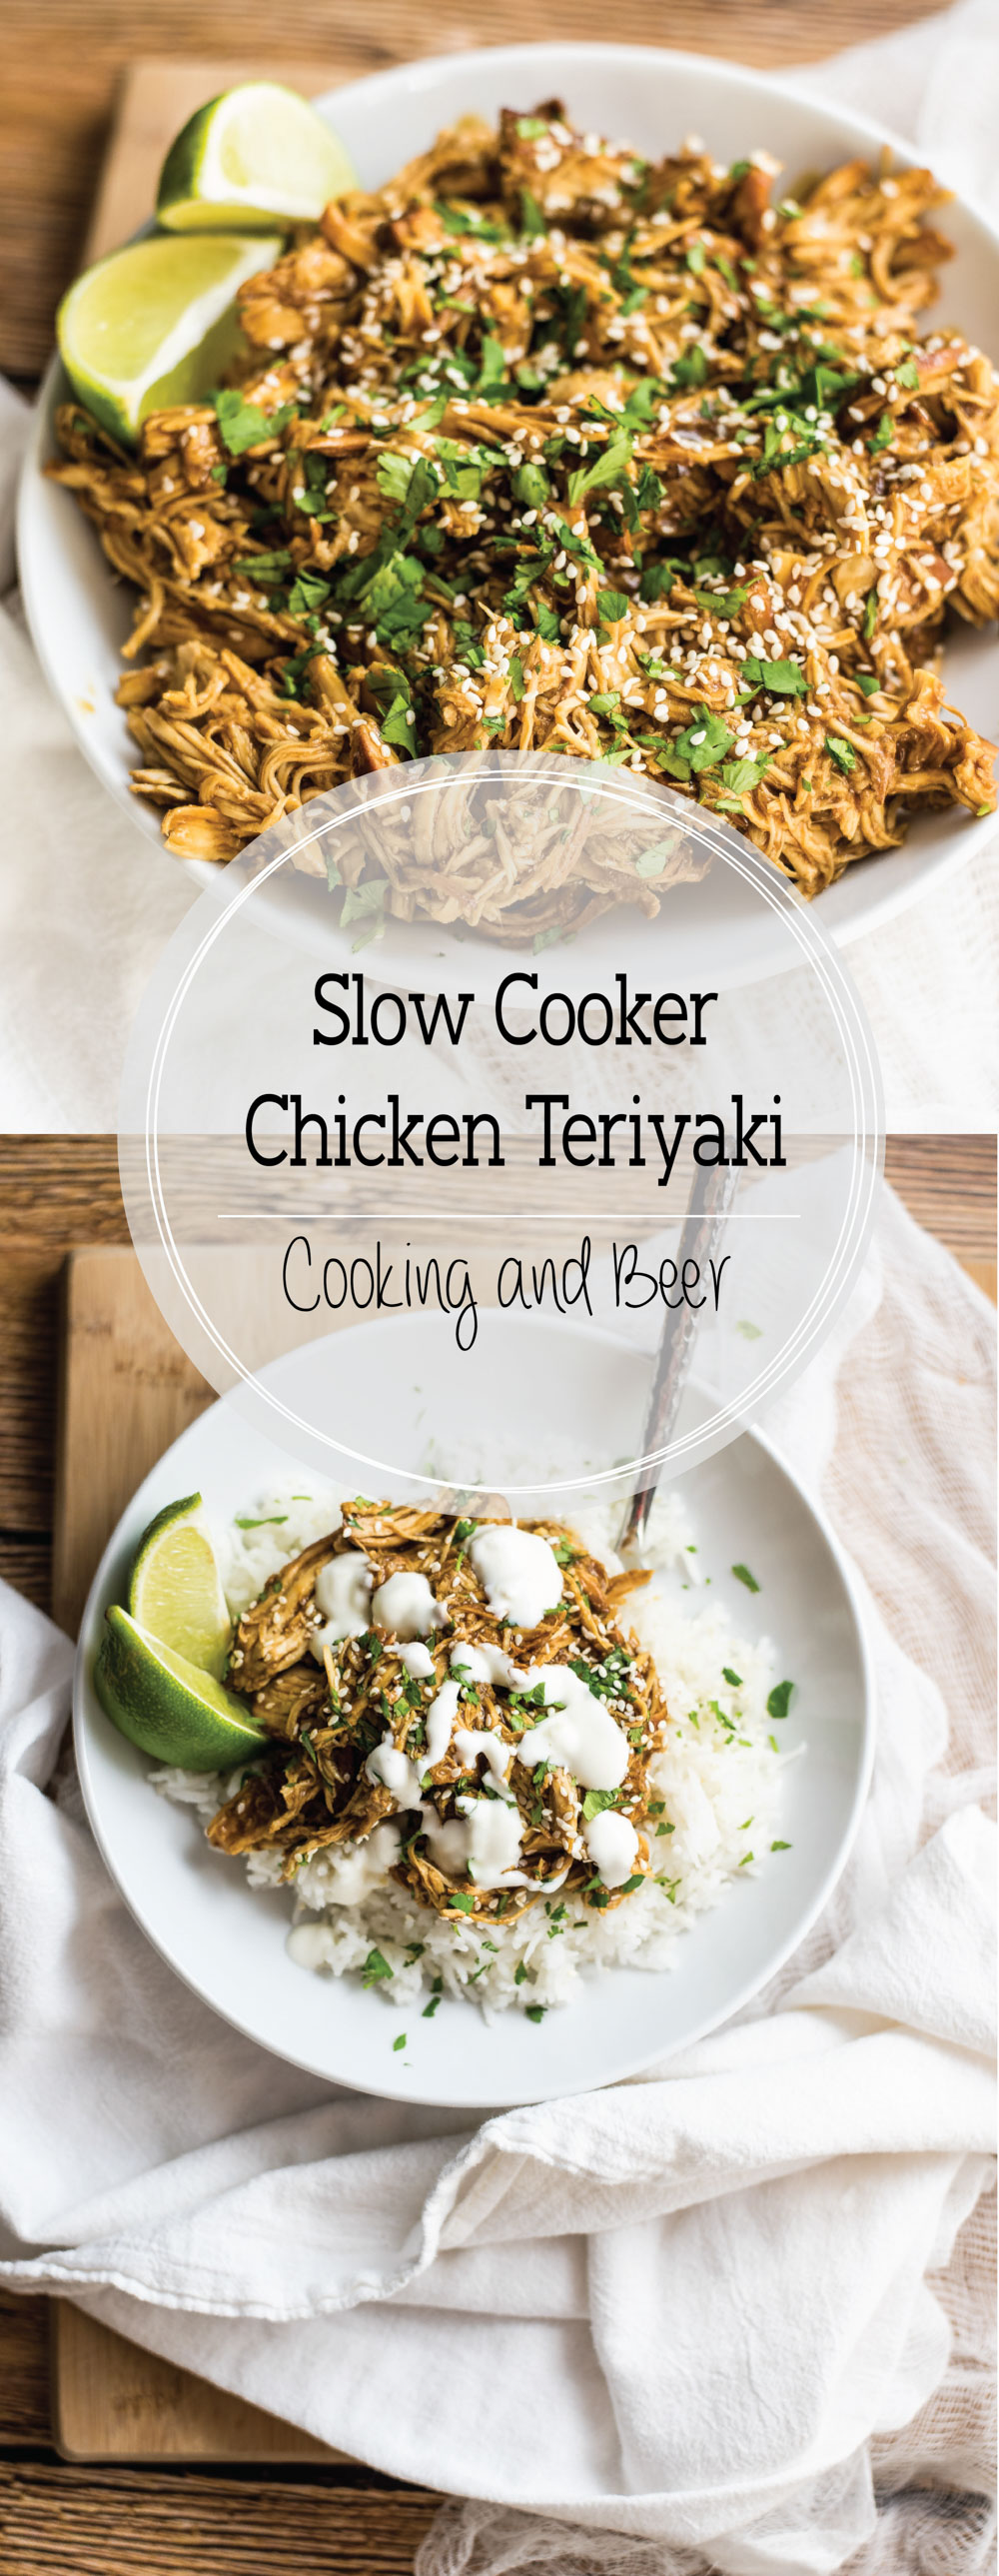 Slow cooker chicken teriyaki is a super flavorful and delicious weeknight dinner recipe. It's perfect served on a bed of rice or a taco shell!